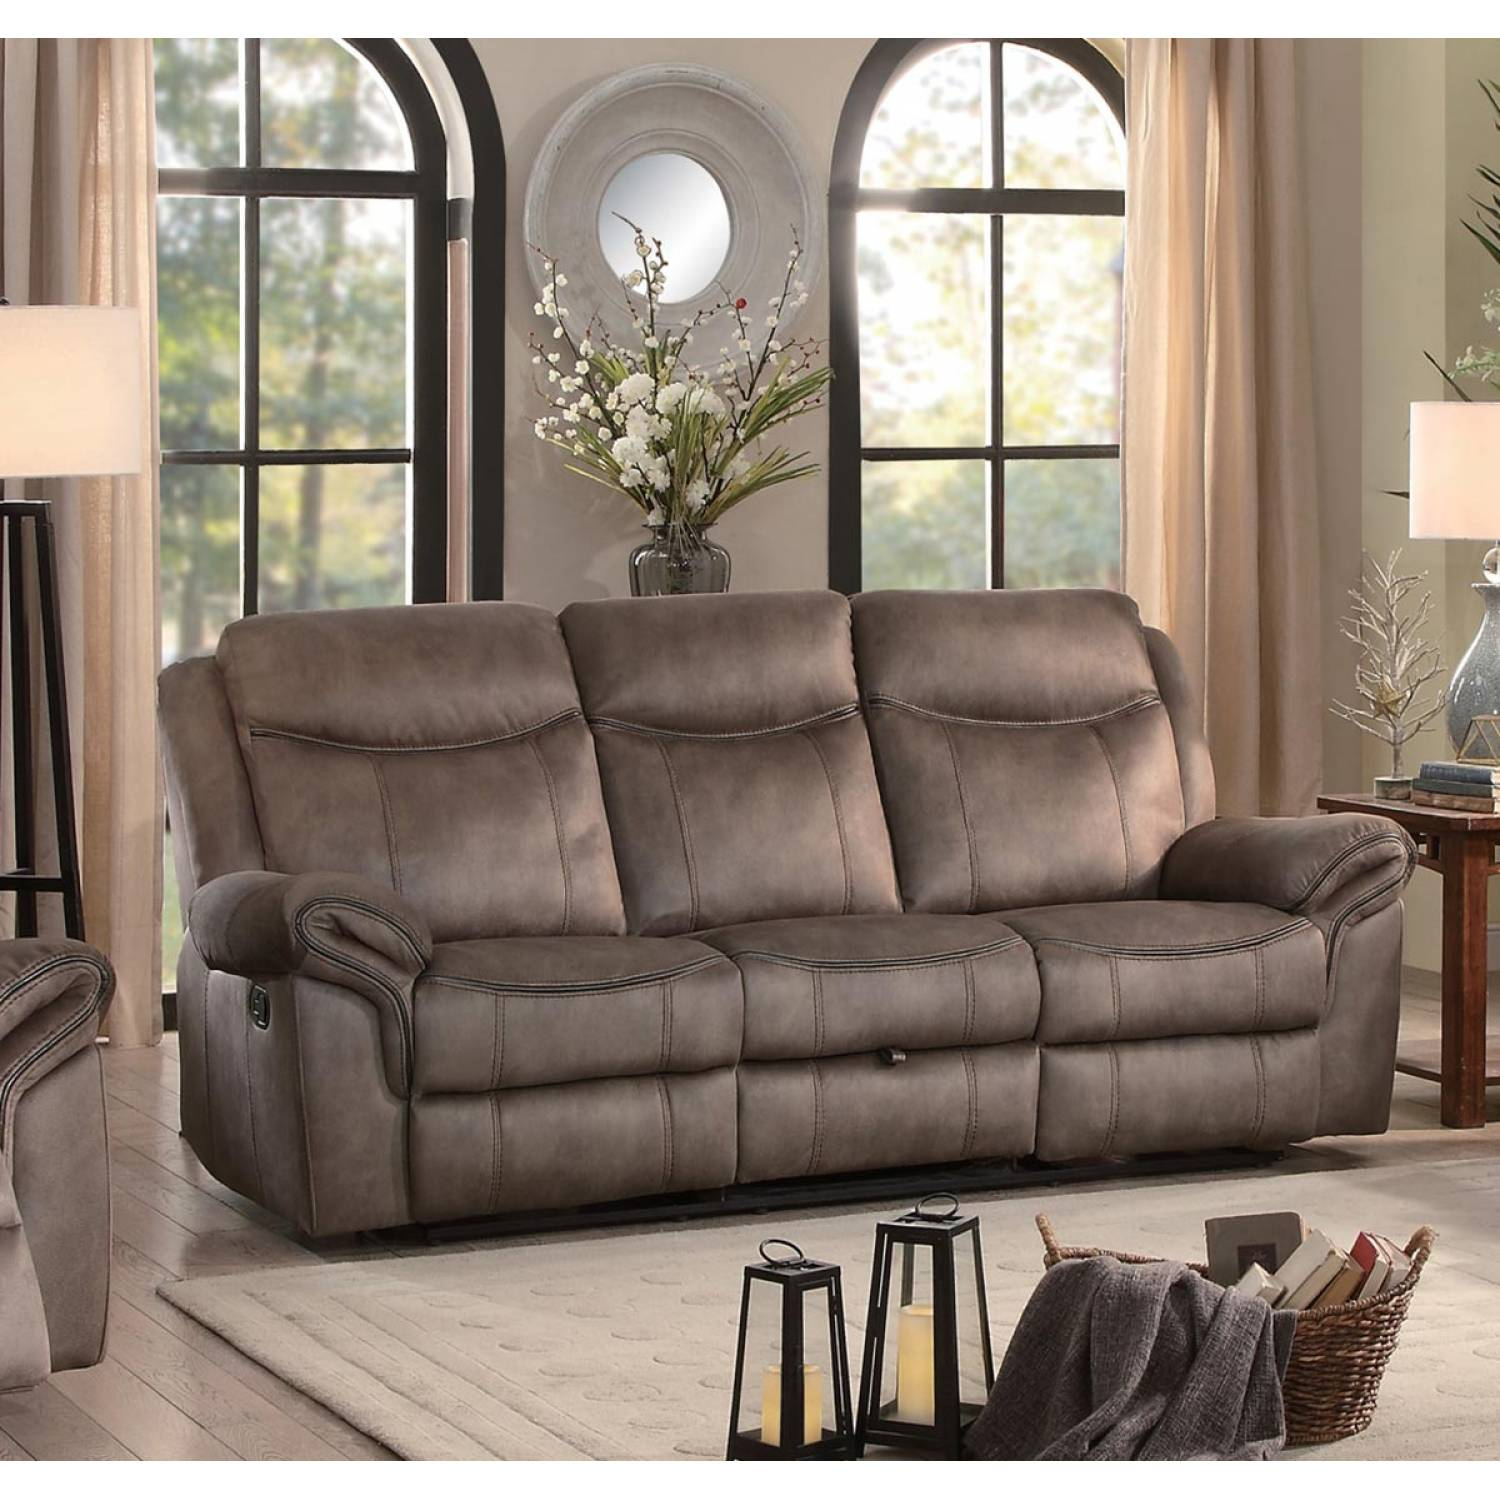 Picture of: Aram Double Reclining Sofa With Center Drop Down Cup Holders Receptacles And Hidden Drawer Brown